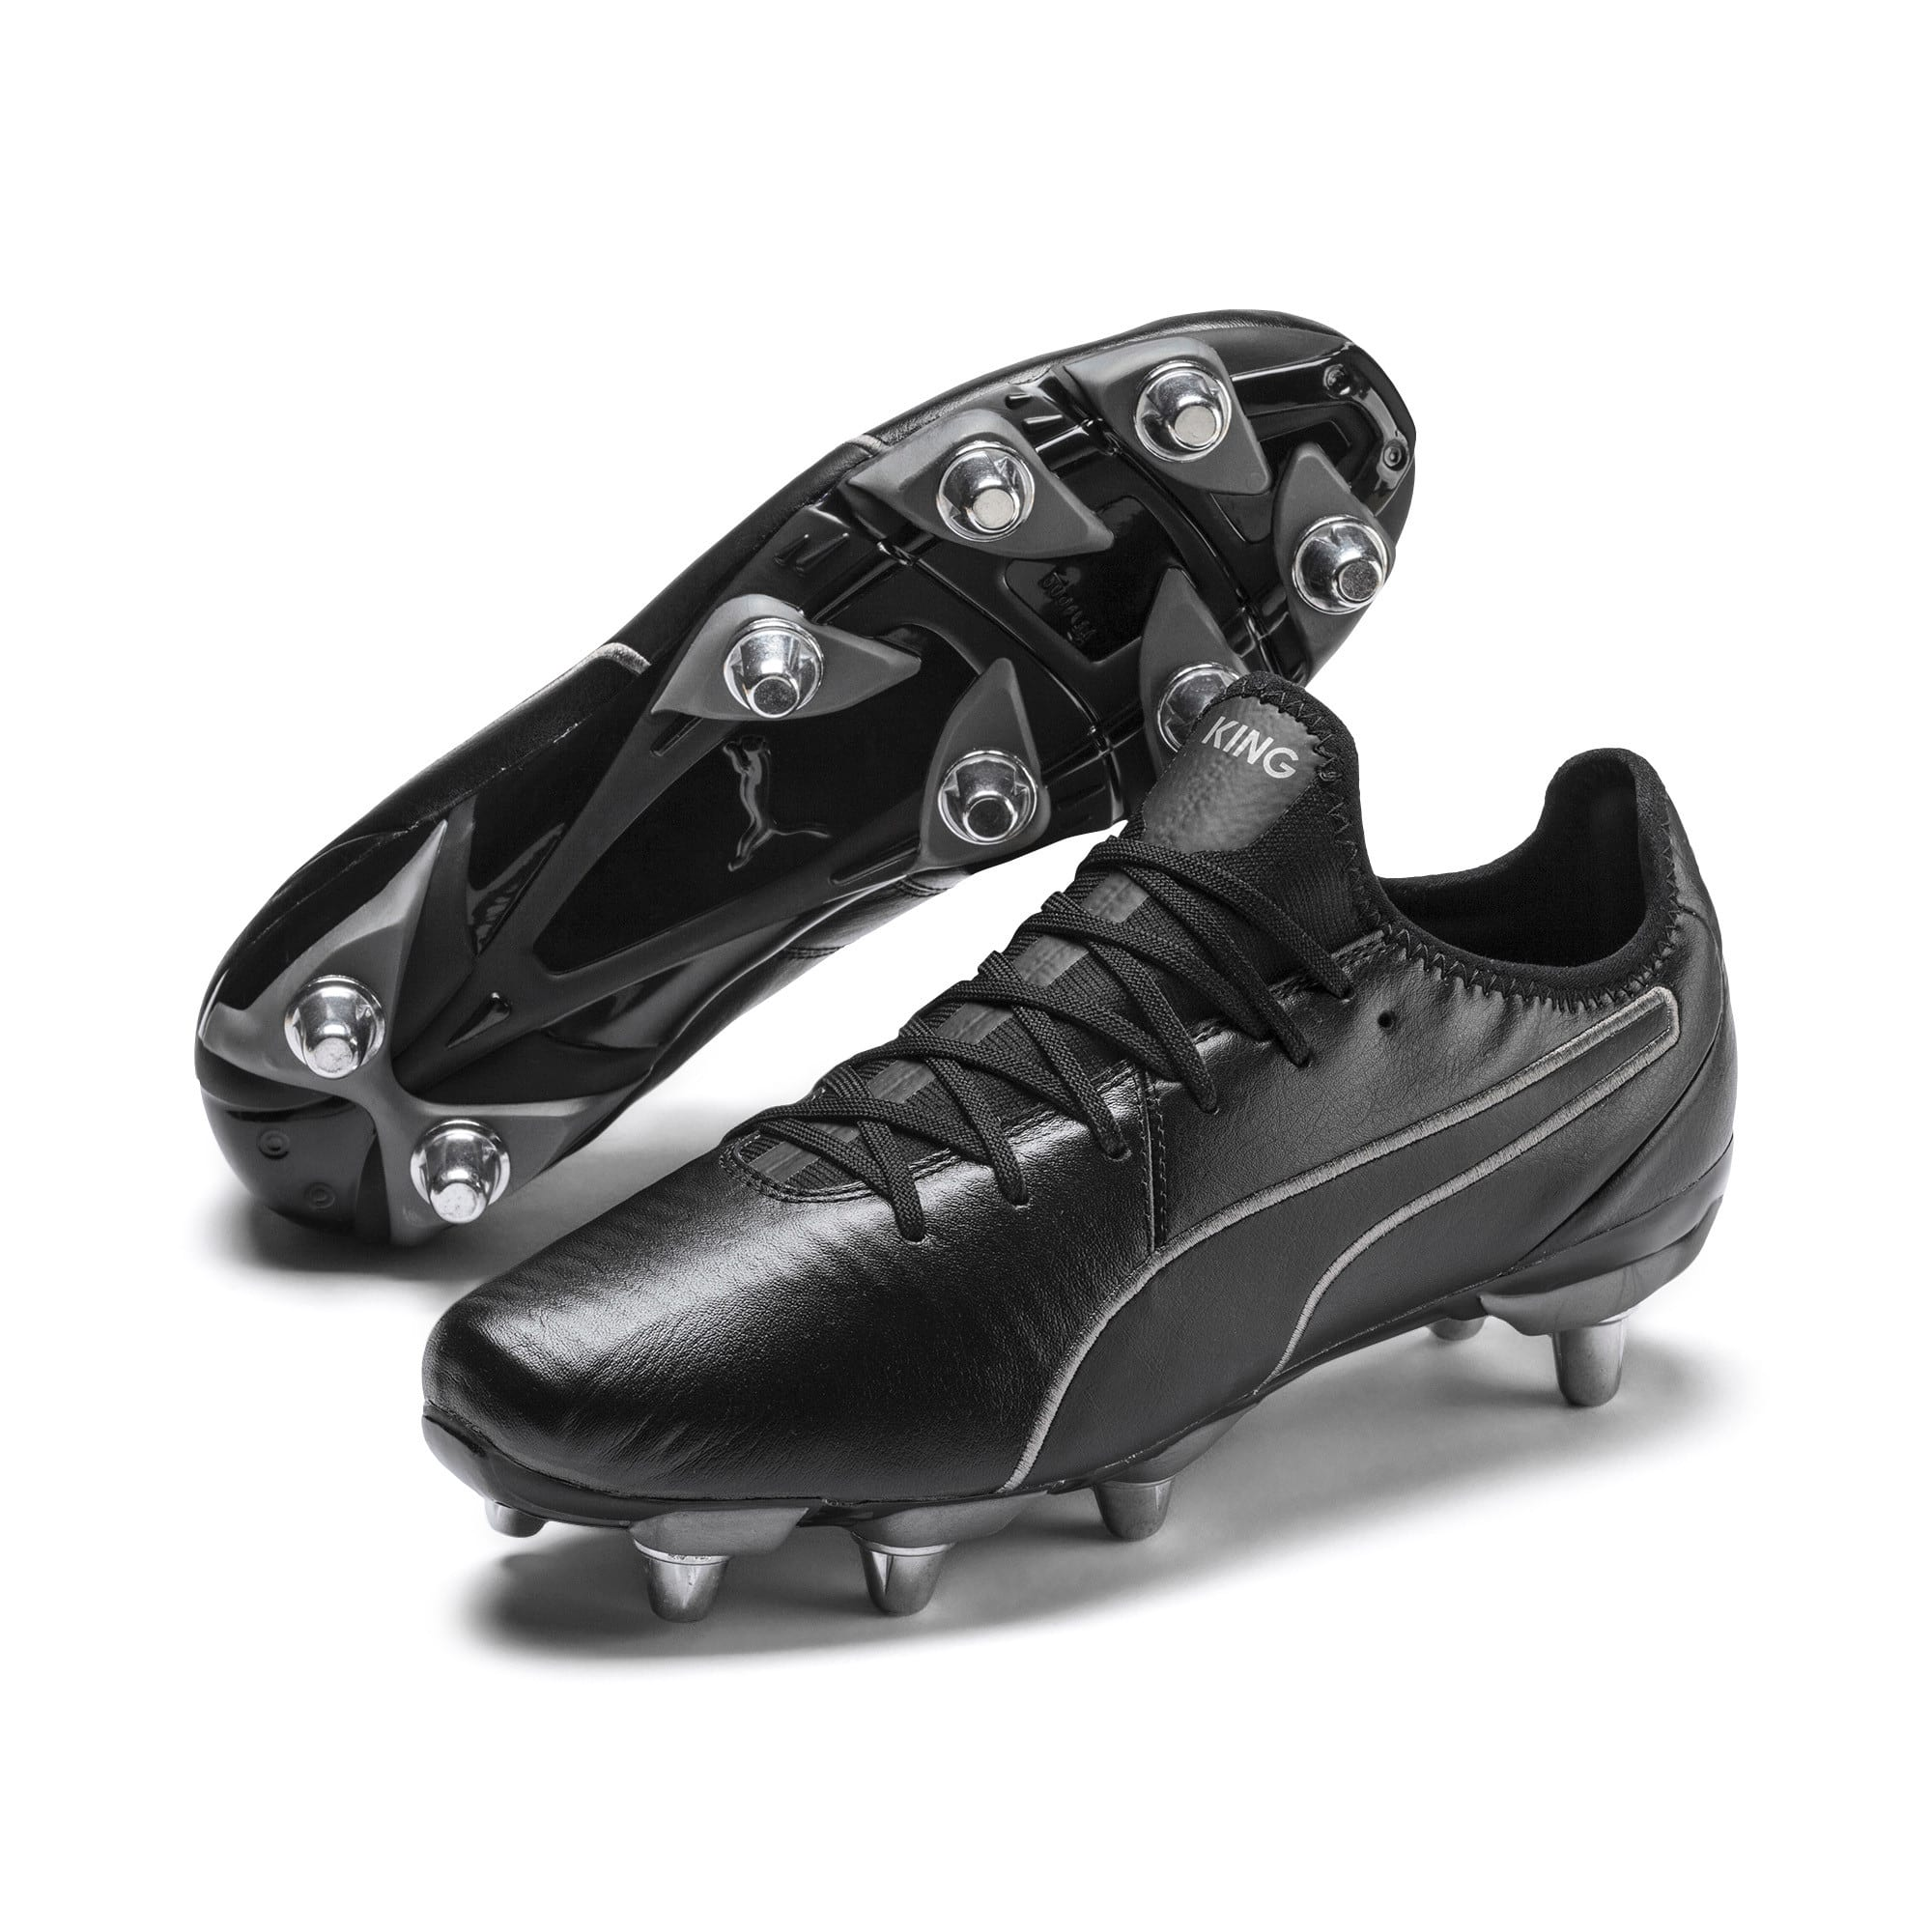 Thumbnail 2 of KING Pro H8 Men's Rugby Boots, Puma Black-Puma Aged Silver, medium